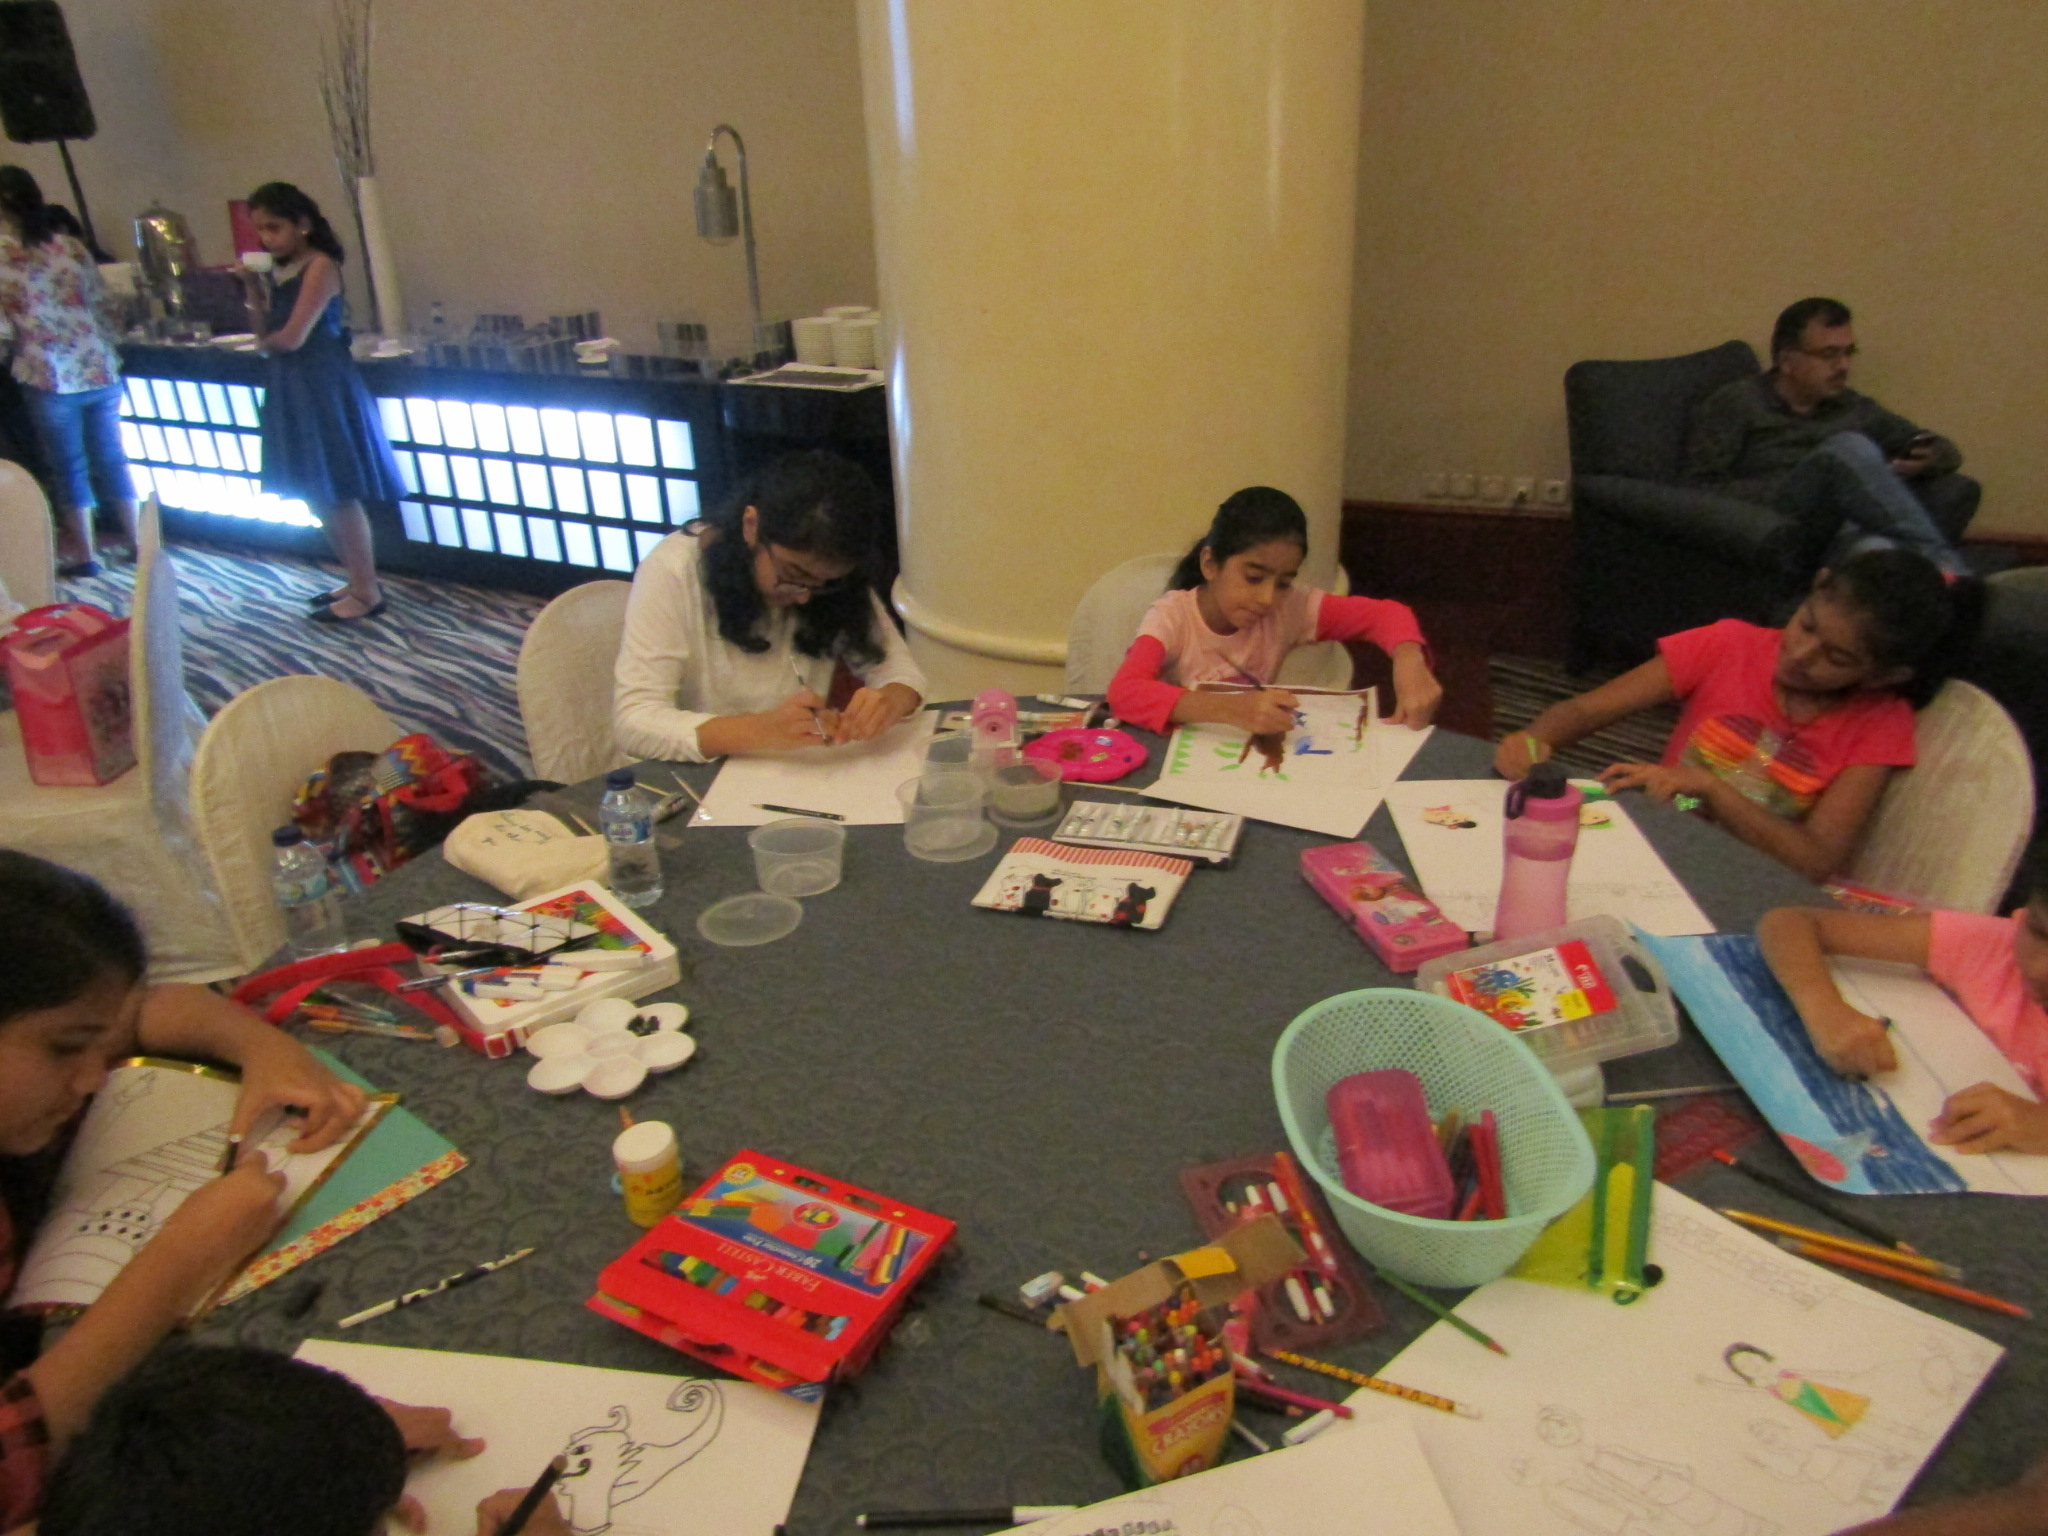 Indoindians – India Club 3rdChildren's Painting Competition Winner